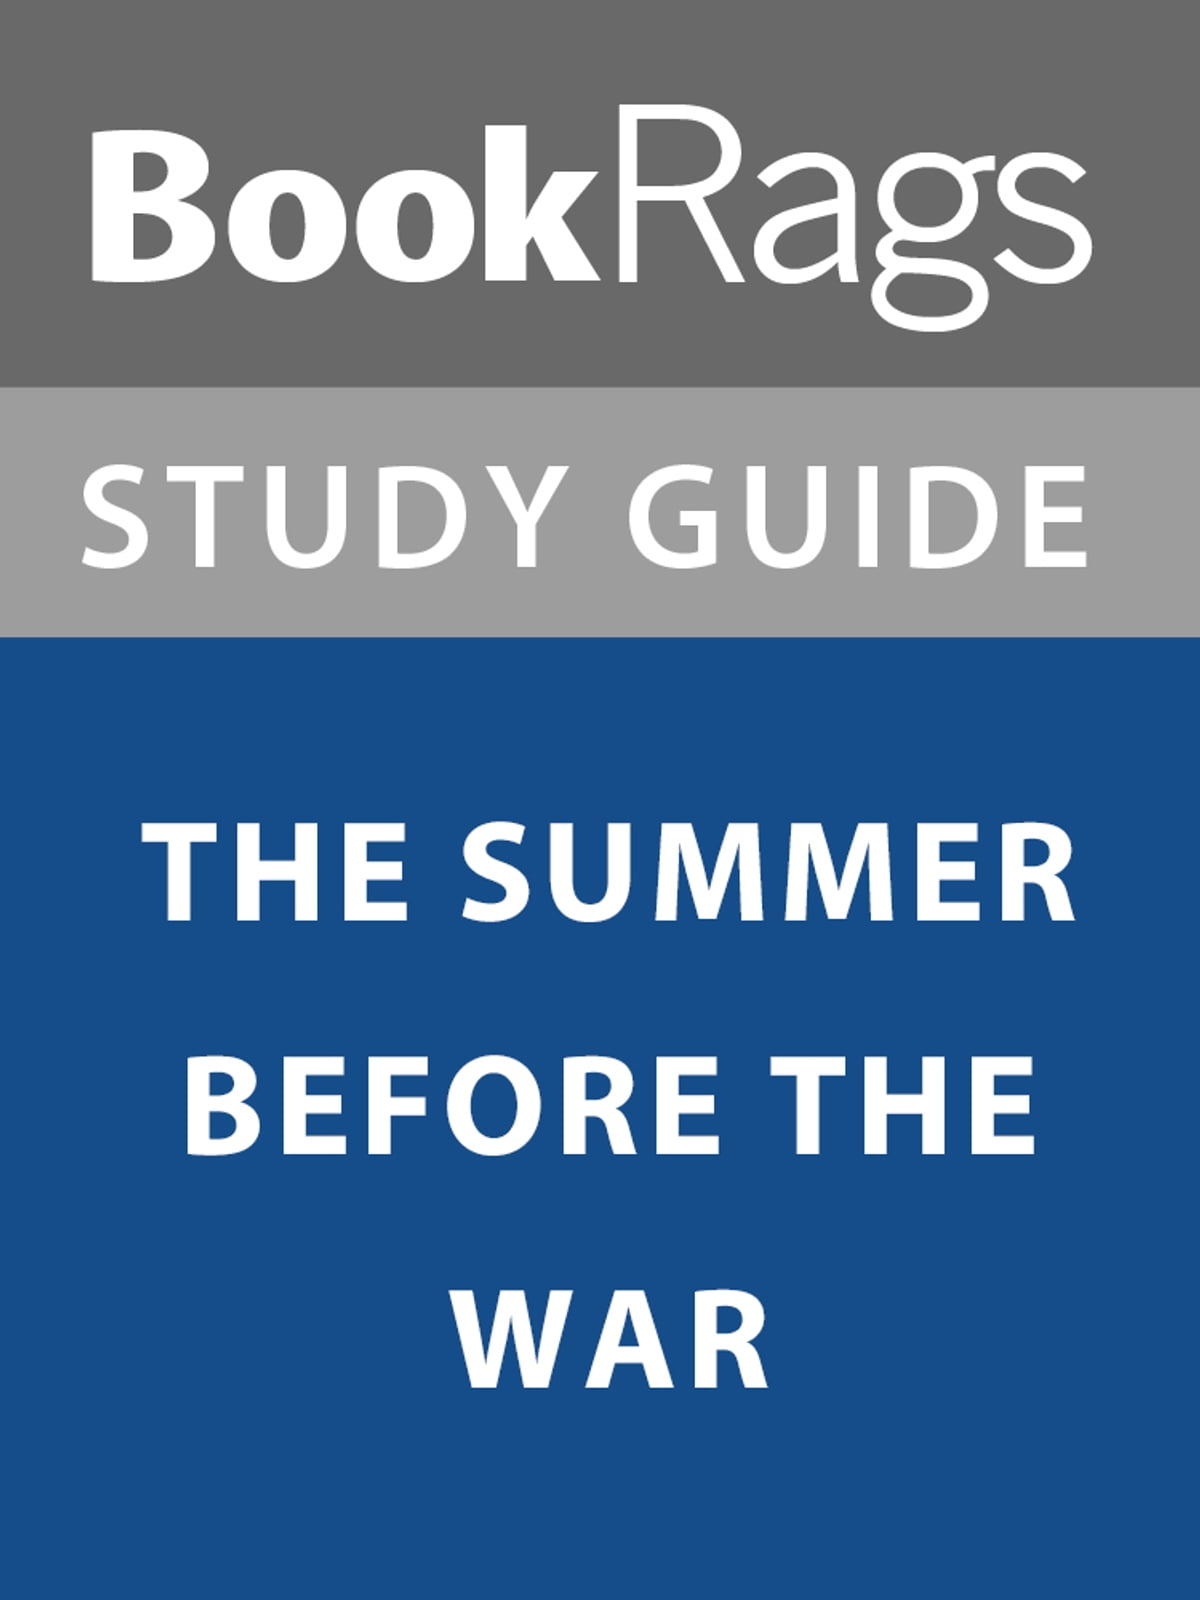 Summary & Study Guide: The Summer Before the War eBook by BookRags -  1230002047256 | Rakuten Kobo